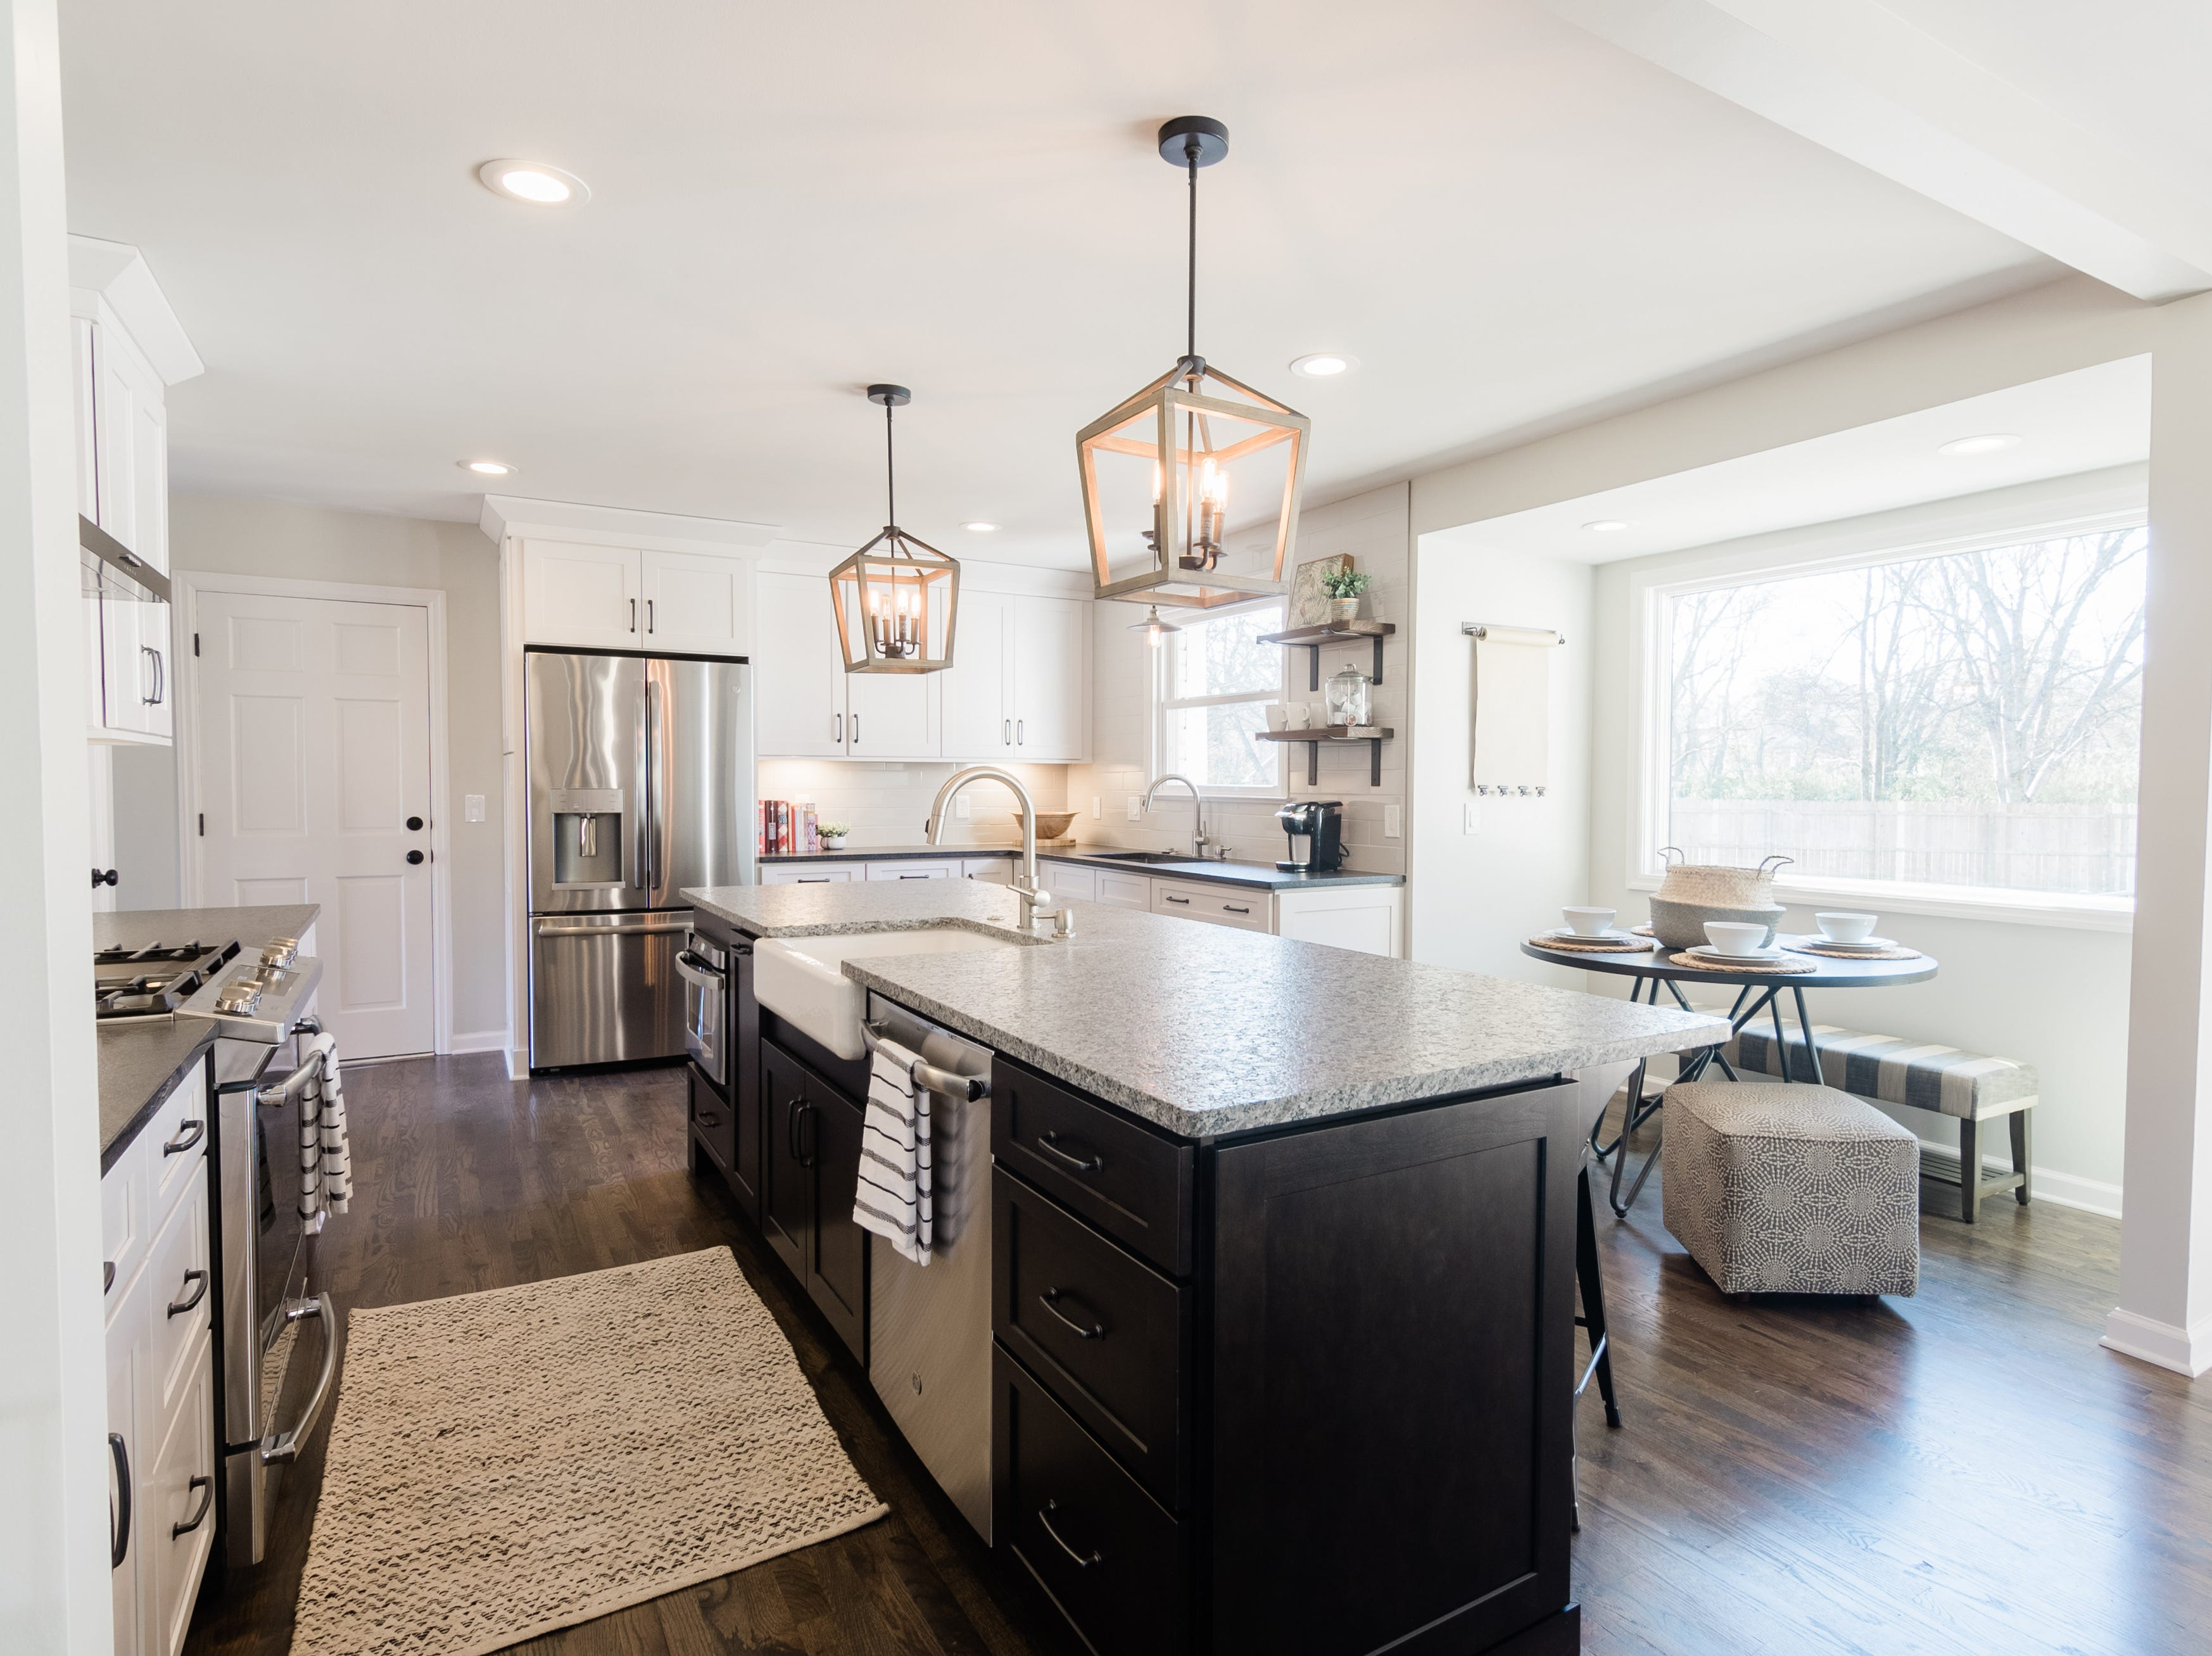 AFTER: With the wall gone that originally separated the kitchen from the living area (to the right of the breakfast nook) the kitchen at 405 Oakvale feels larger and now flows into the rest of the home's open floor plan.